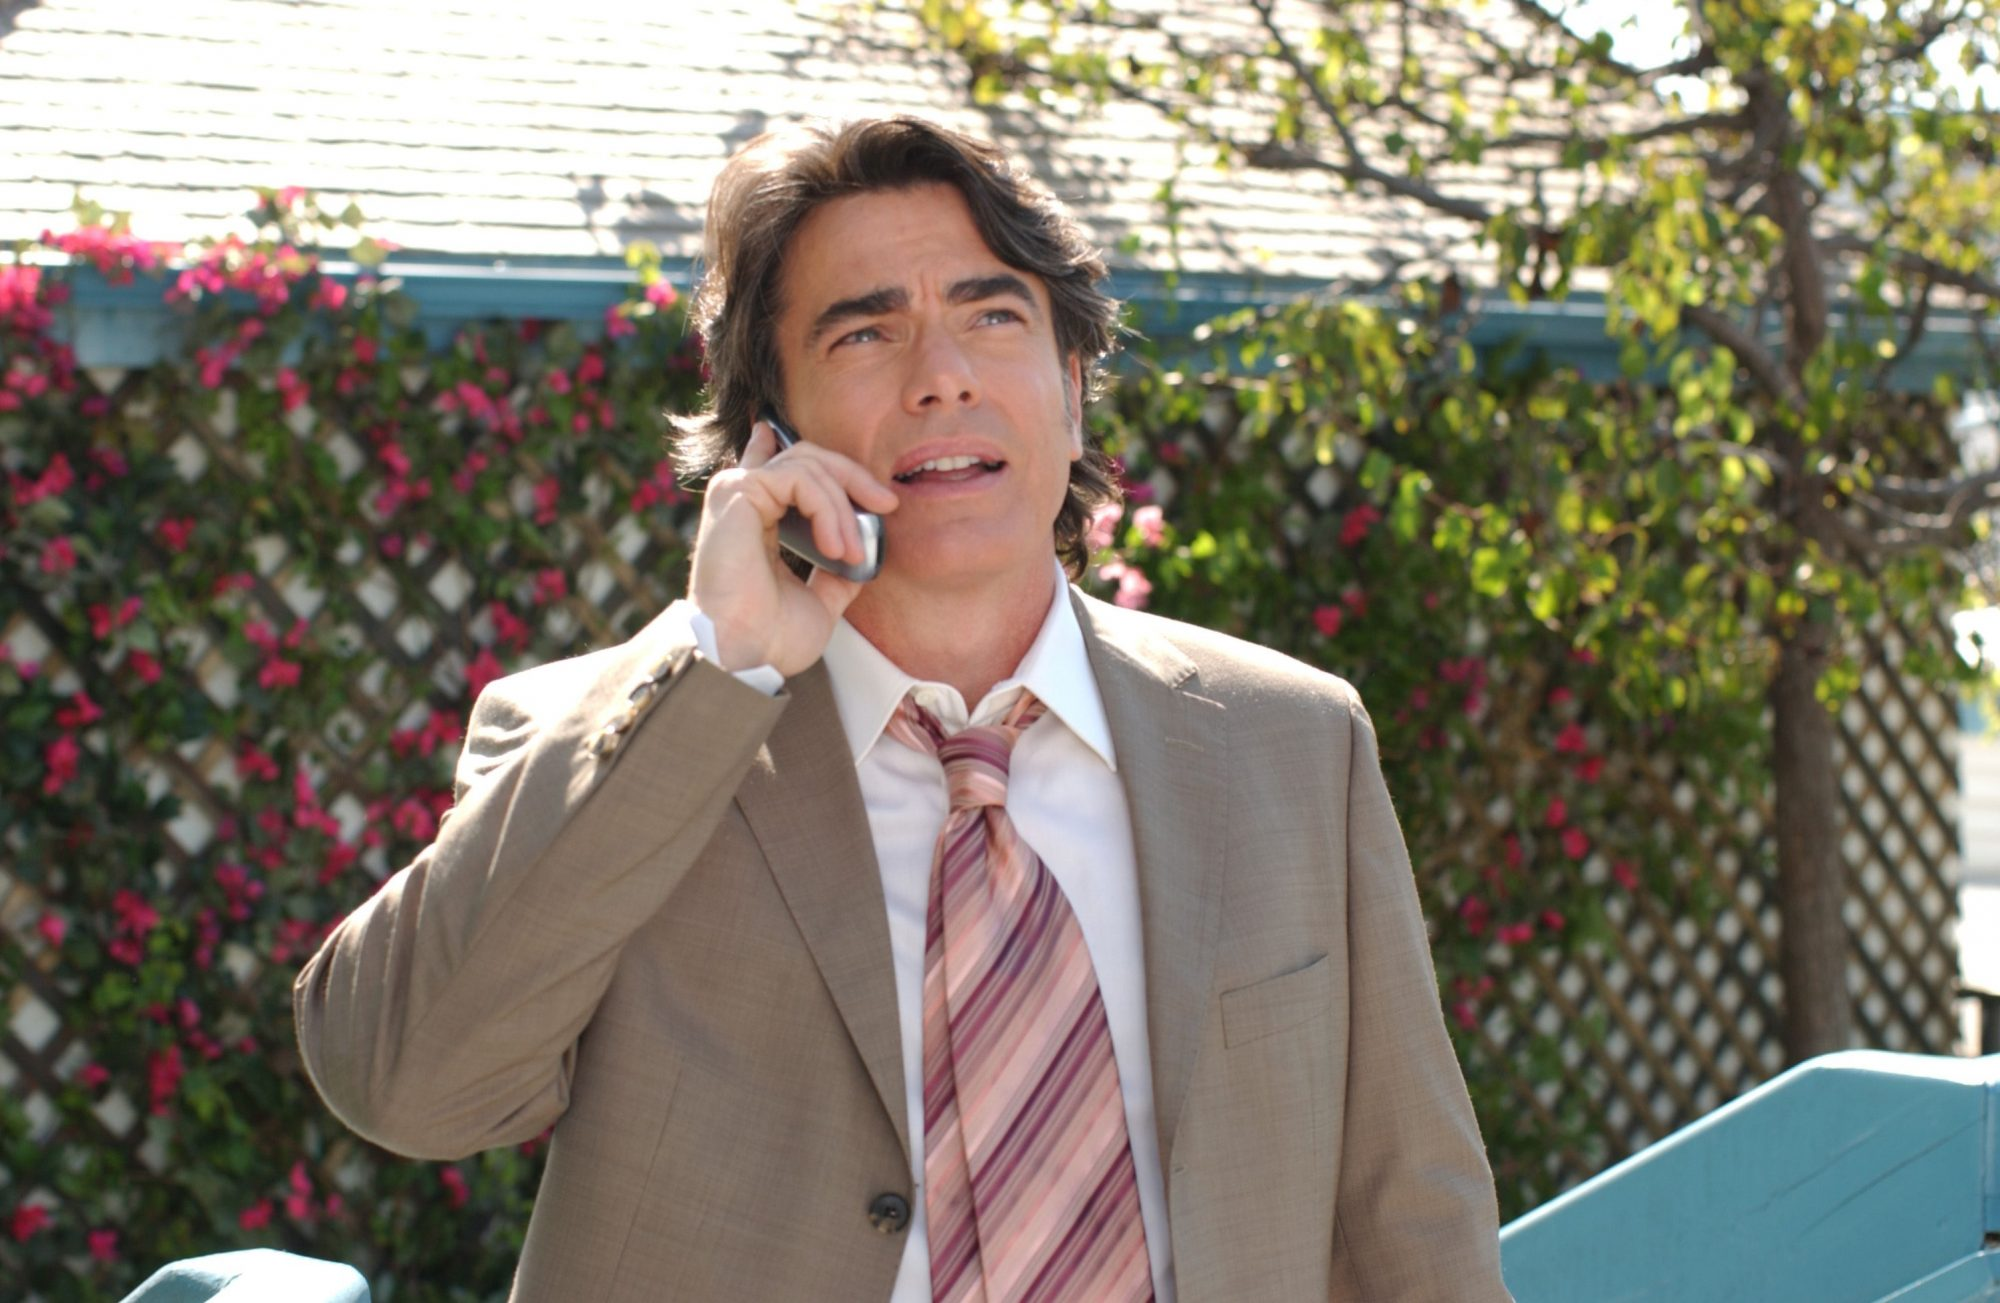 Peter Gallagher as Sandy Cohen in 'The OC'